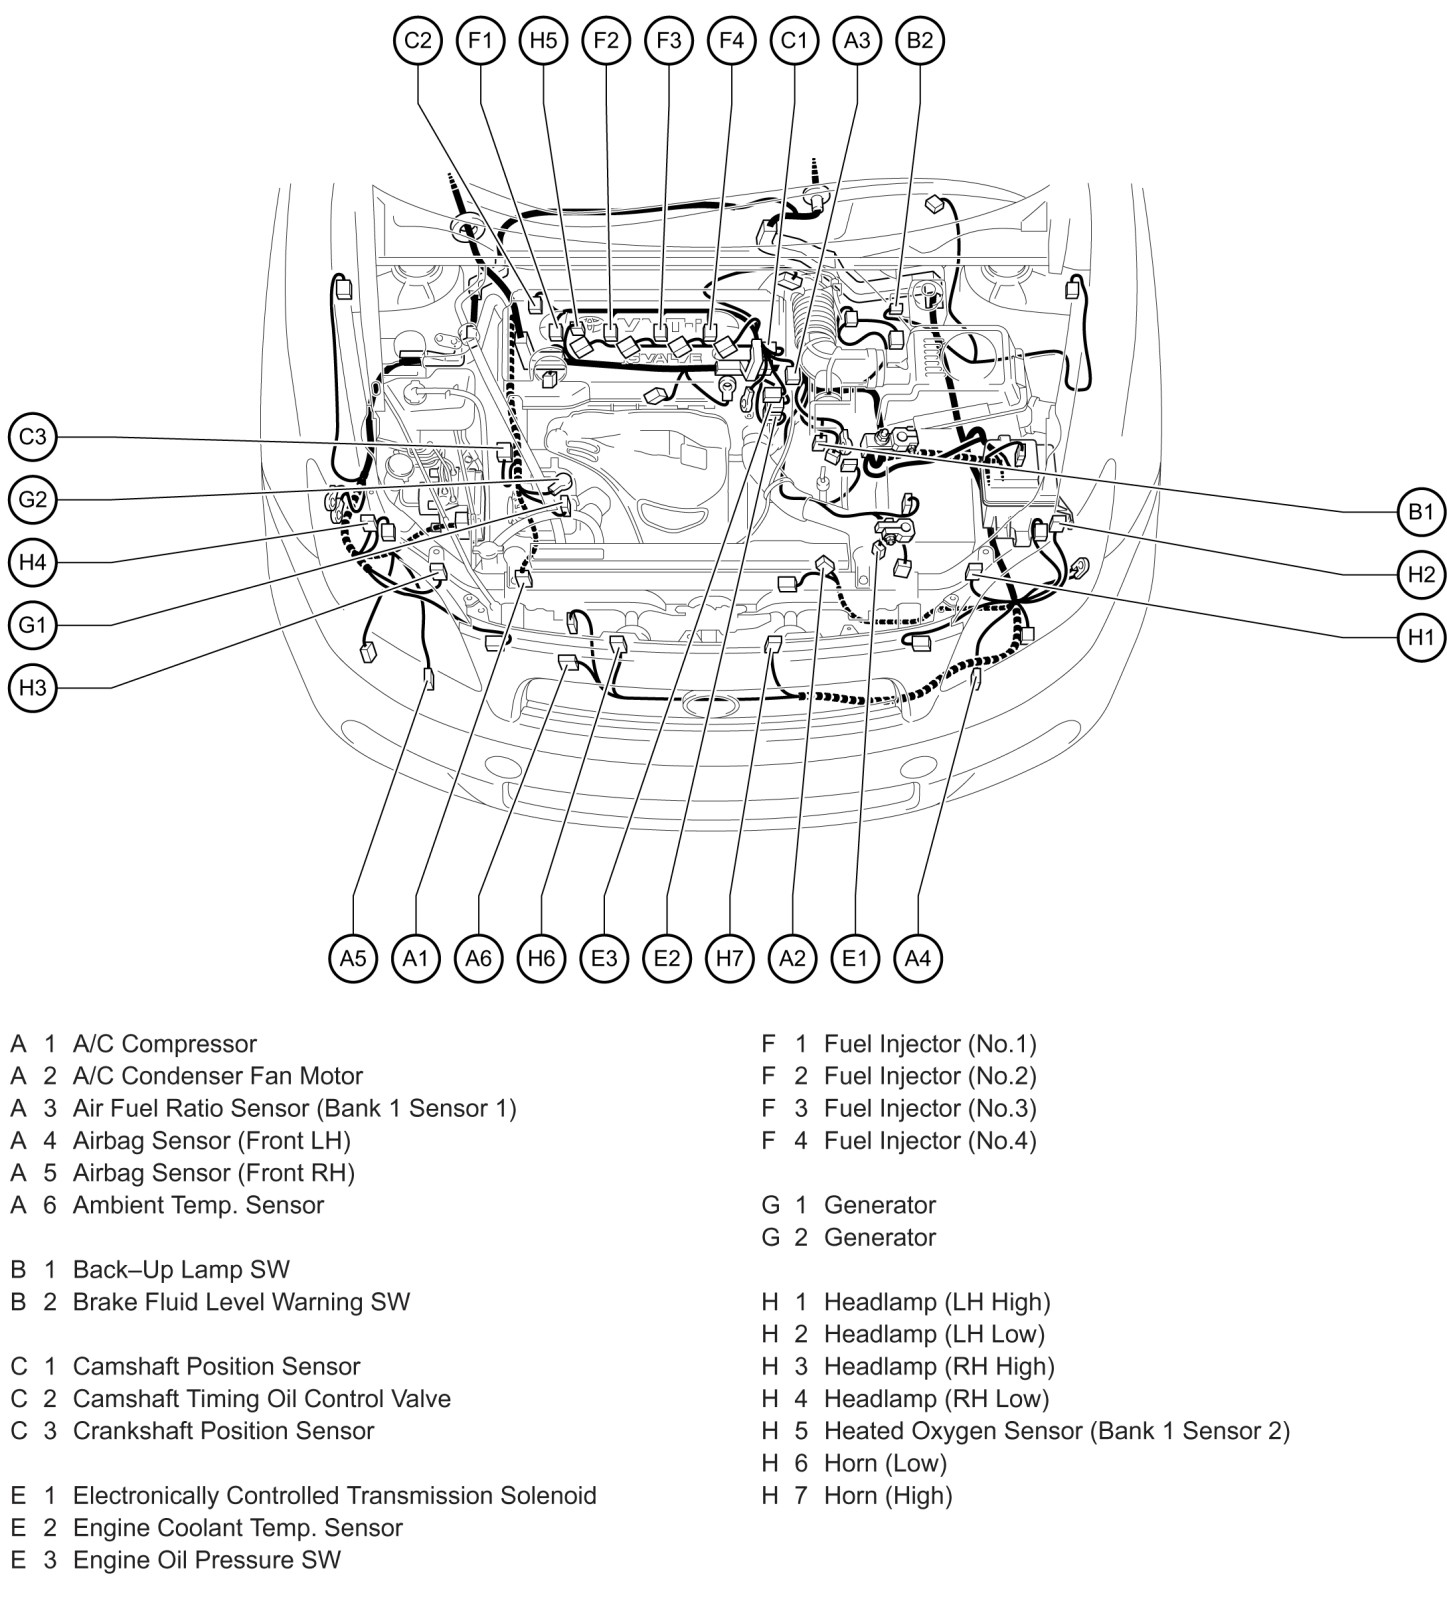 Scion Tc Engine Mount Diagram Scion Xb Engine Diagram Scion Wiring Diagrams Instructions Of Scion Tc Engine Mount Diagram